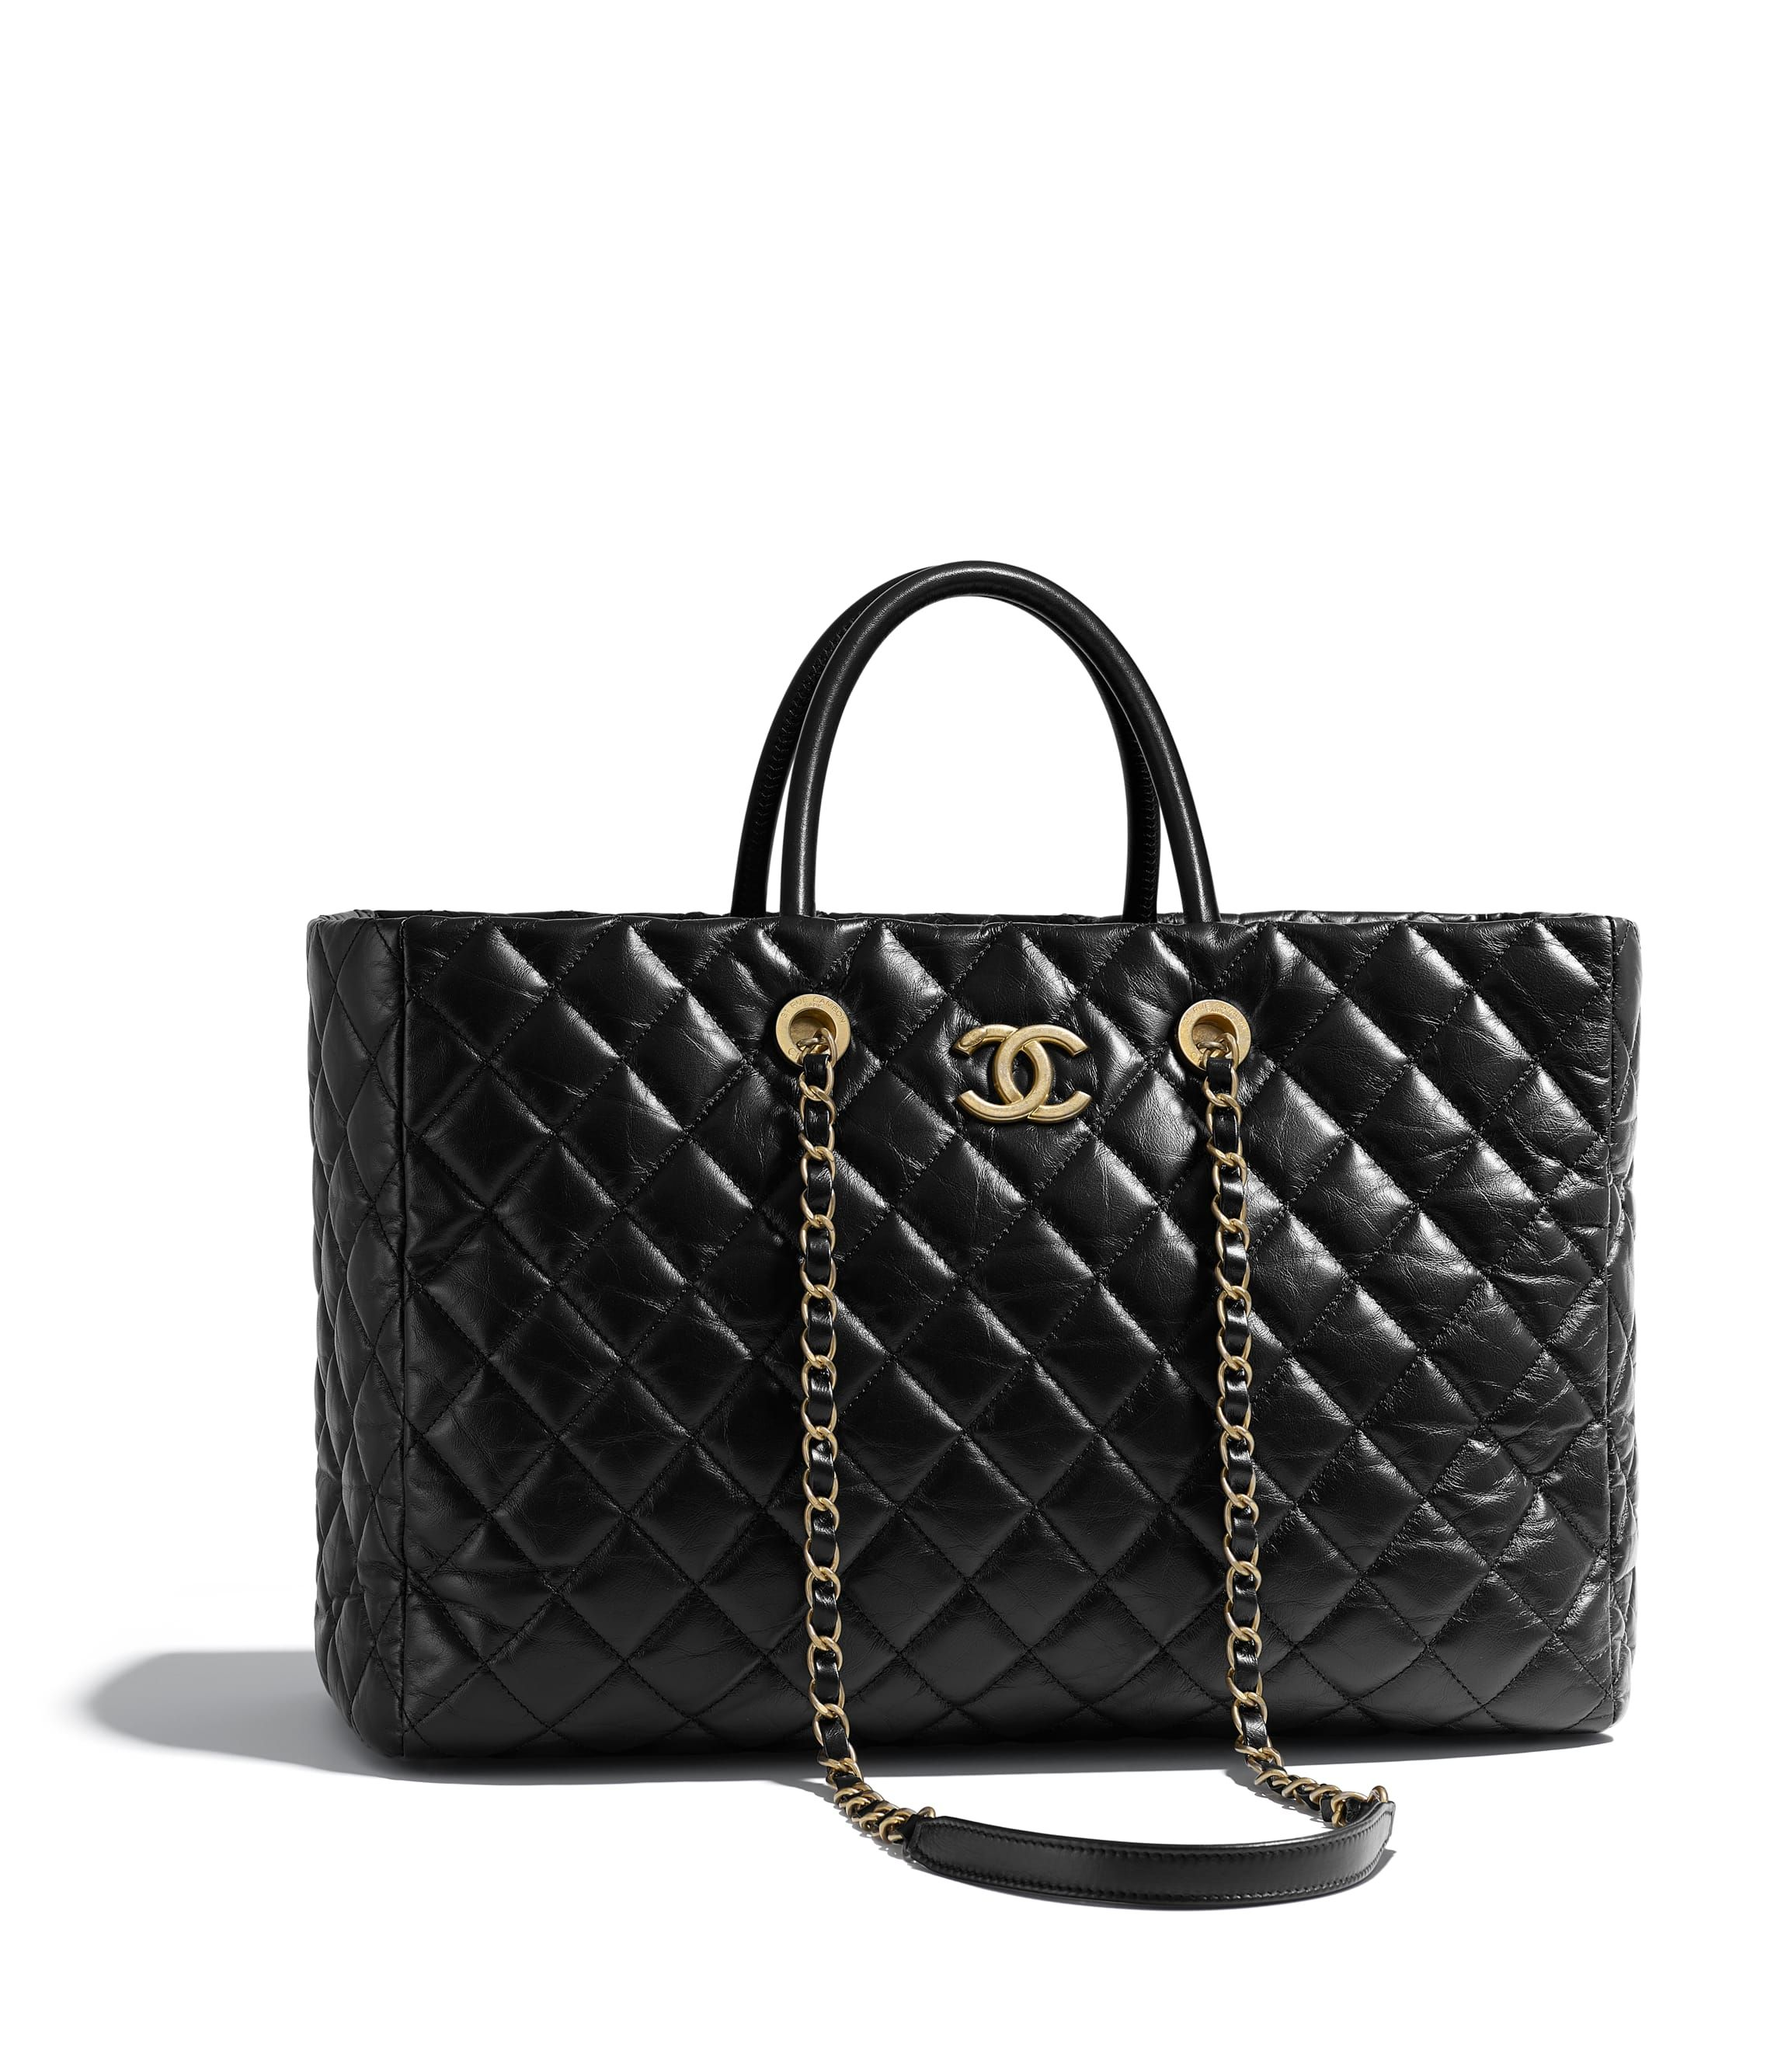 ff0b4a0f498473 Large Shopping Bag, aged calfskin & gold-tone metal, black - CHANEL ...